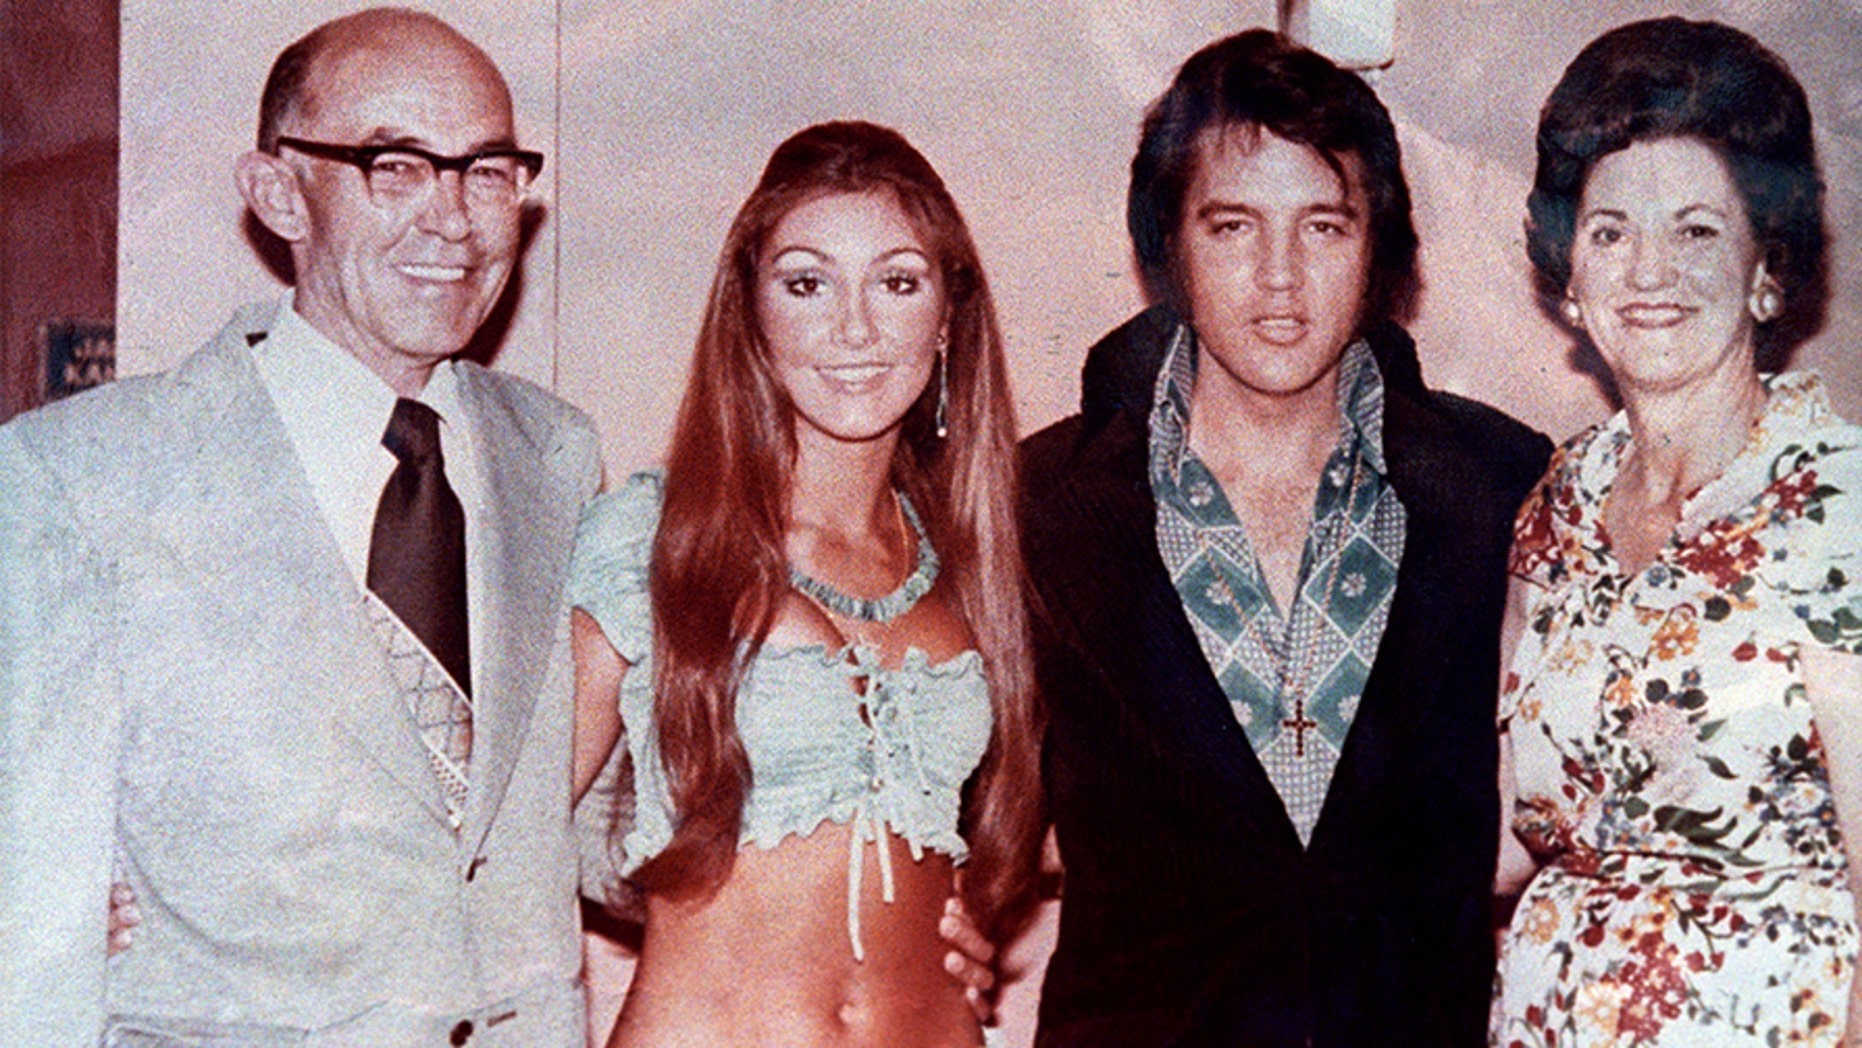 Linda Thompson (left) posing with her then-boyfriend Elvis Presley and her parents.